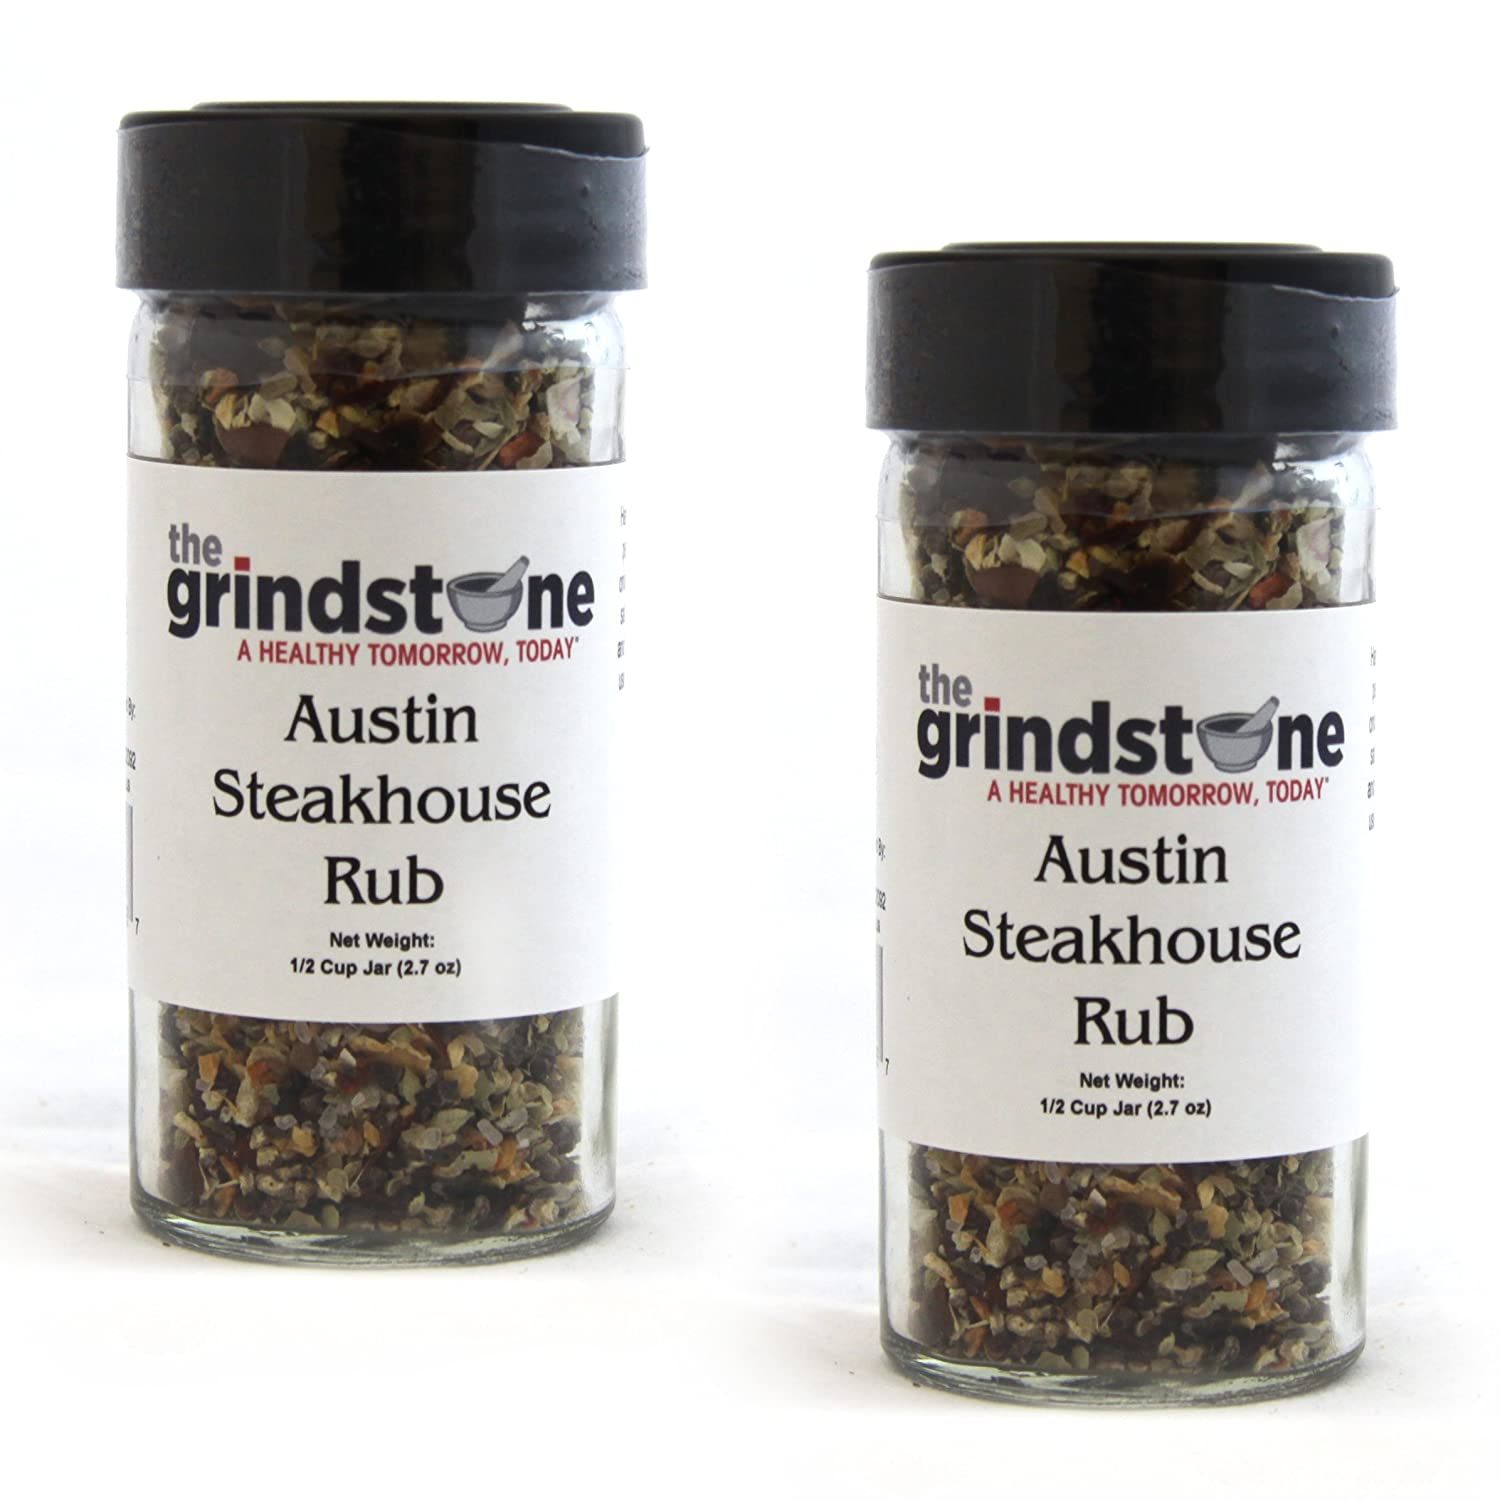 The Grindstone   Austin Steakhouse Rub   Non GMO   Hand Blended Spices   1/2 Cup Size   2.60 oz. Glass Bottle with Sifter   Pack of 2